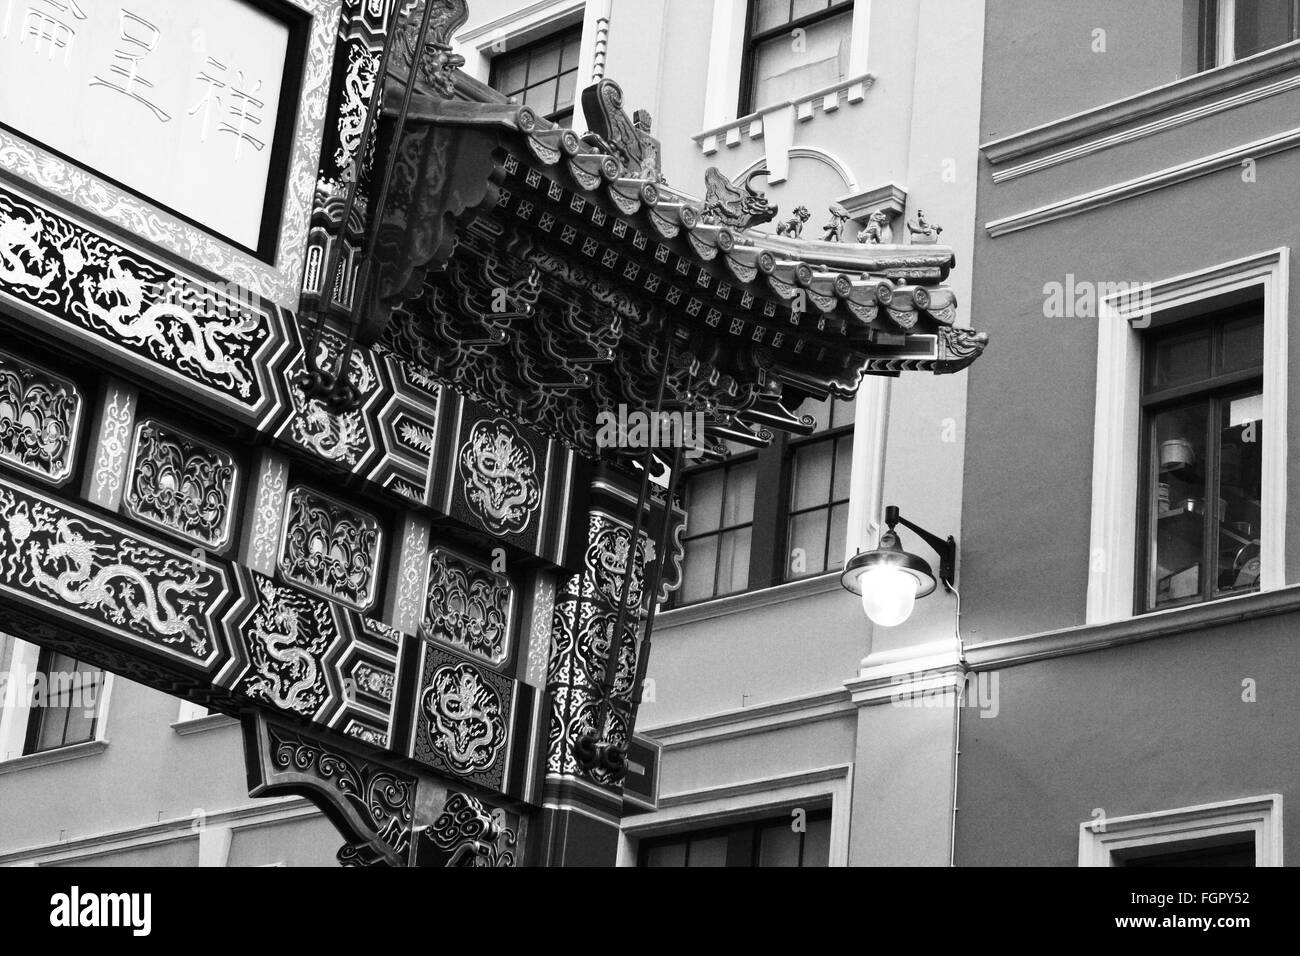 A view of the Wardour Street entrance to Chinatown in London, England - Stock Image